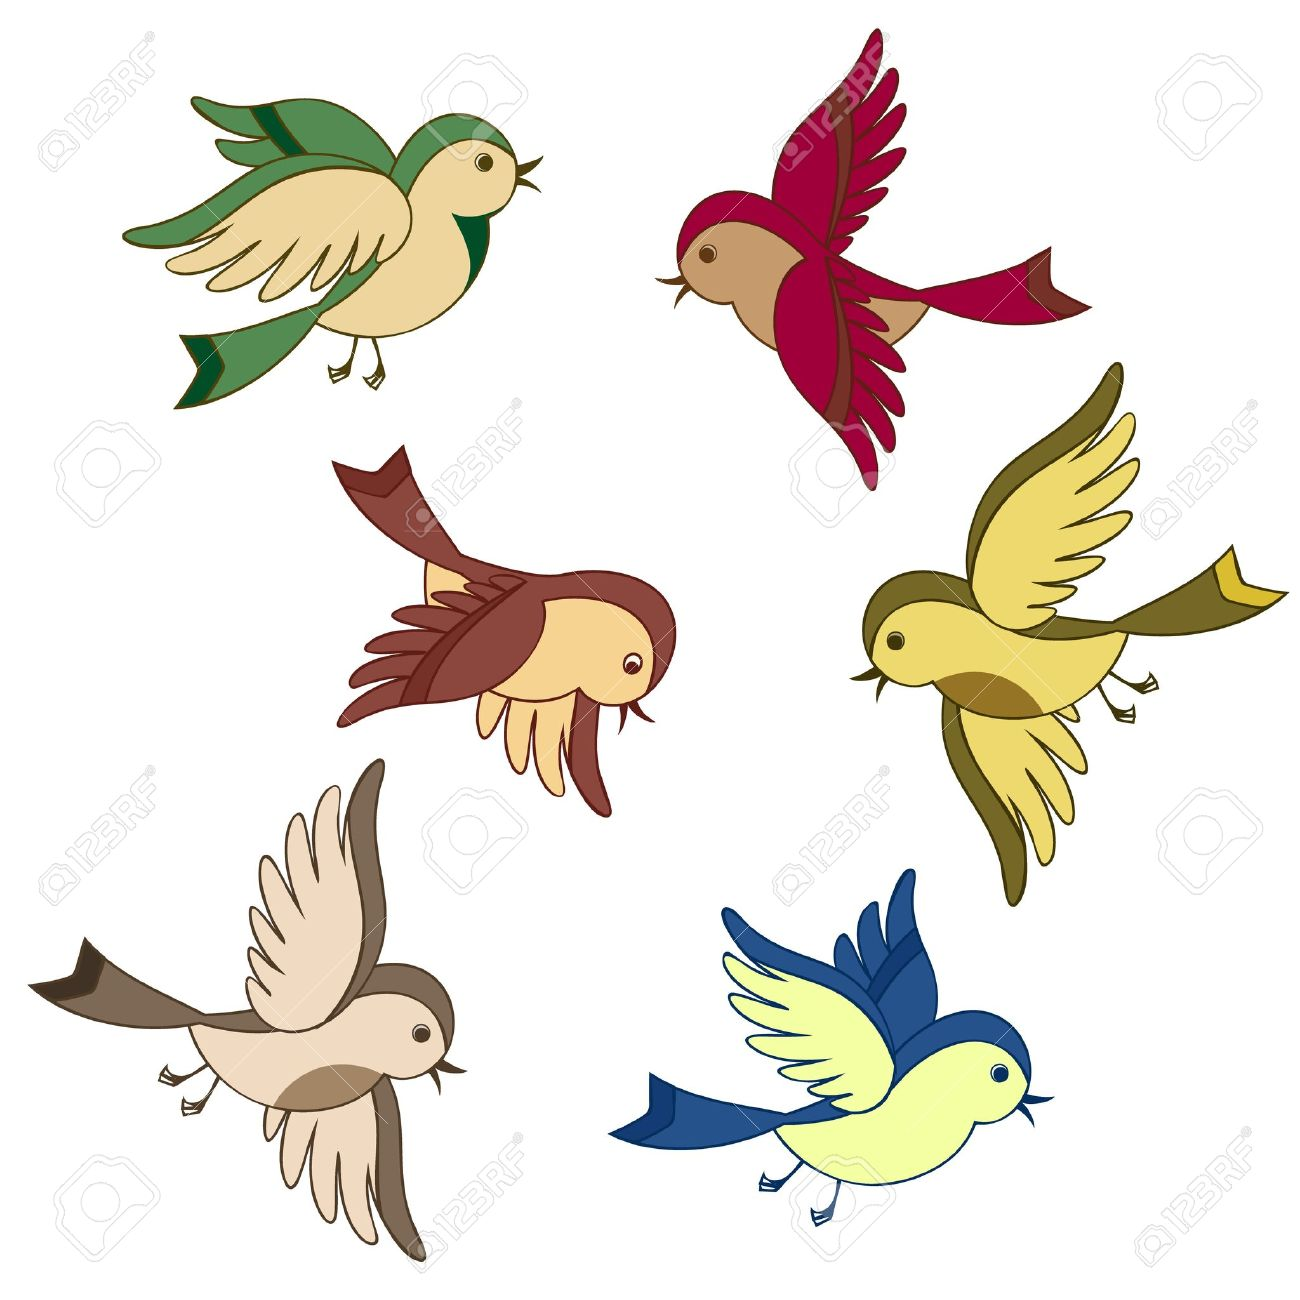 1300x1300 168,785 Cartoon Bird Stock Illustrations, Cliparts And Royalty